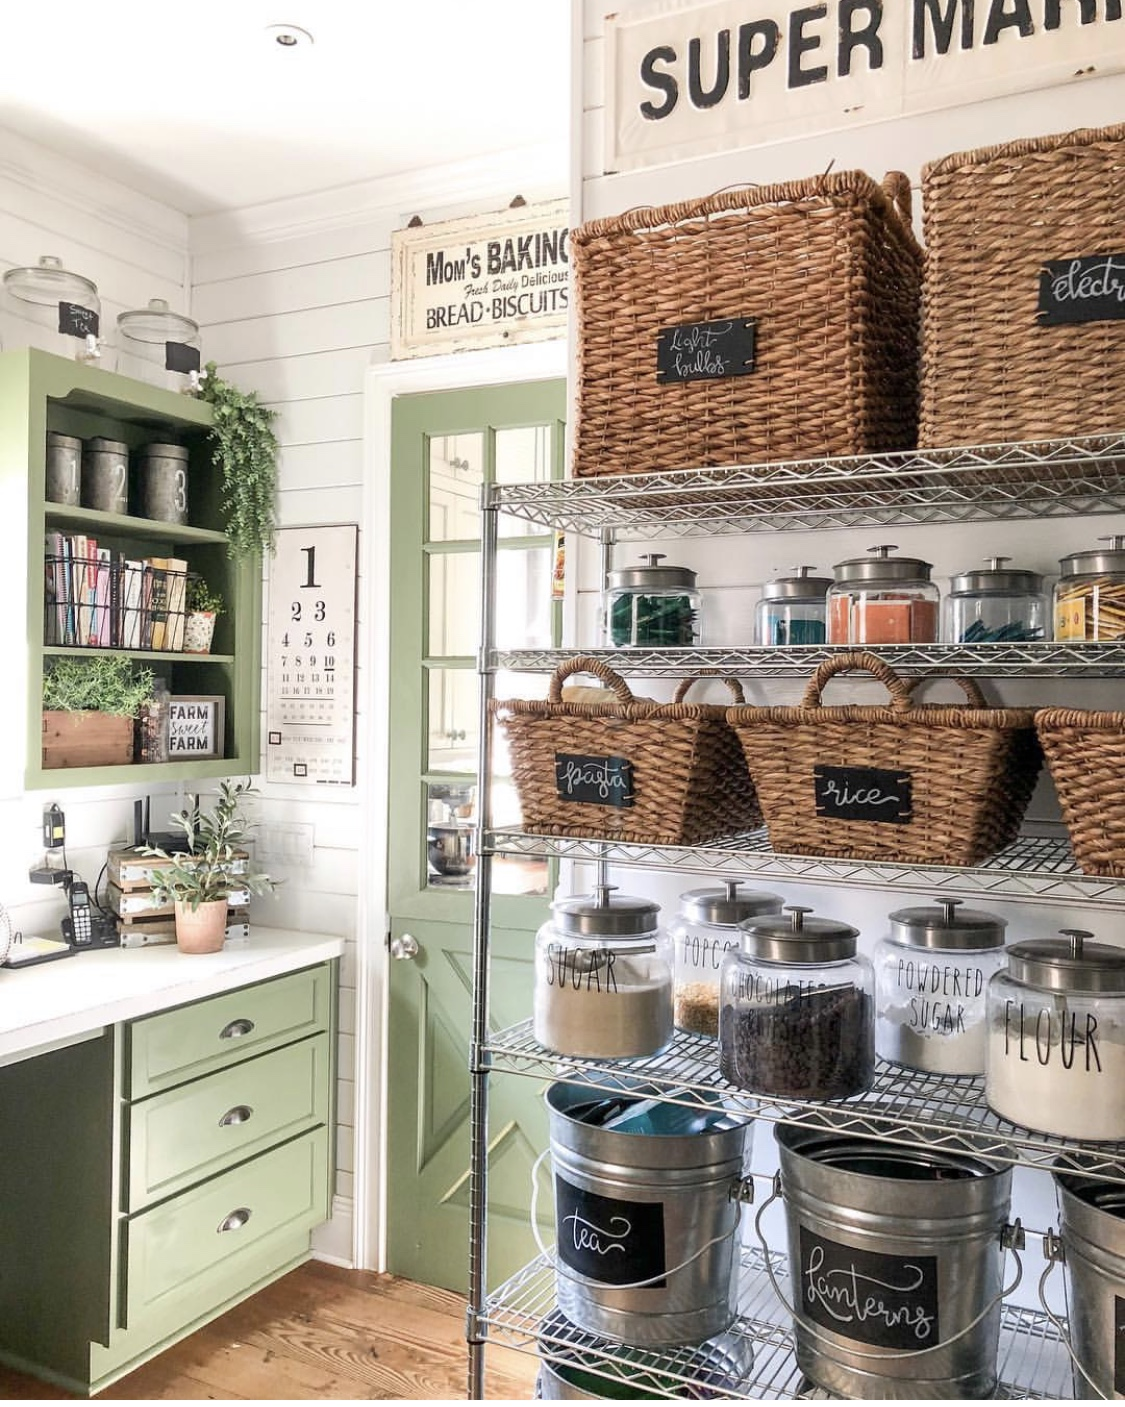 baker's rack used as pantry storage and organization